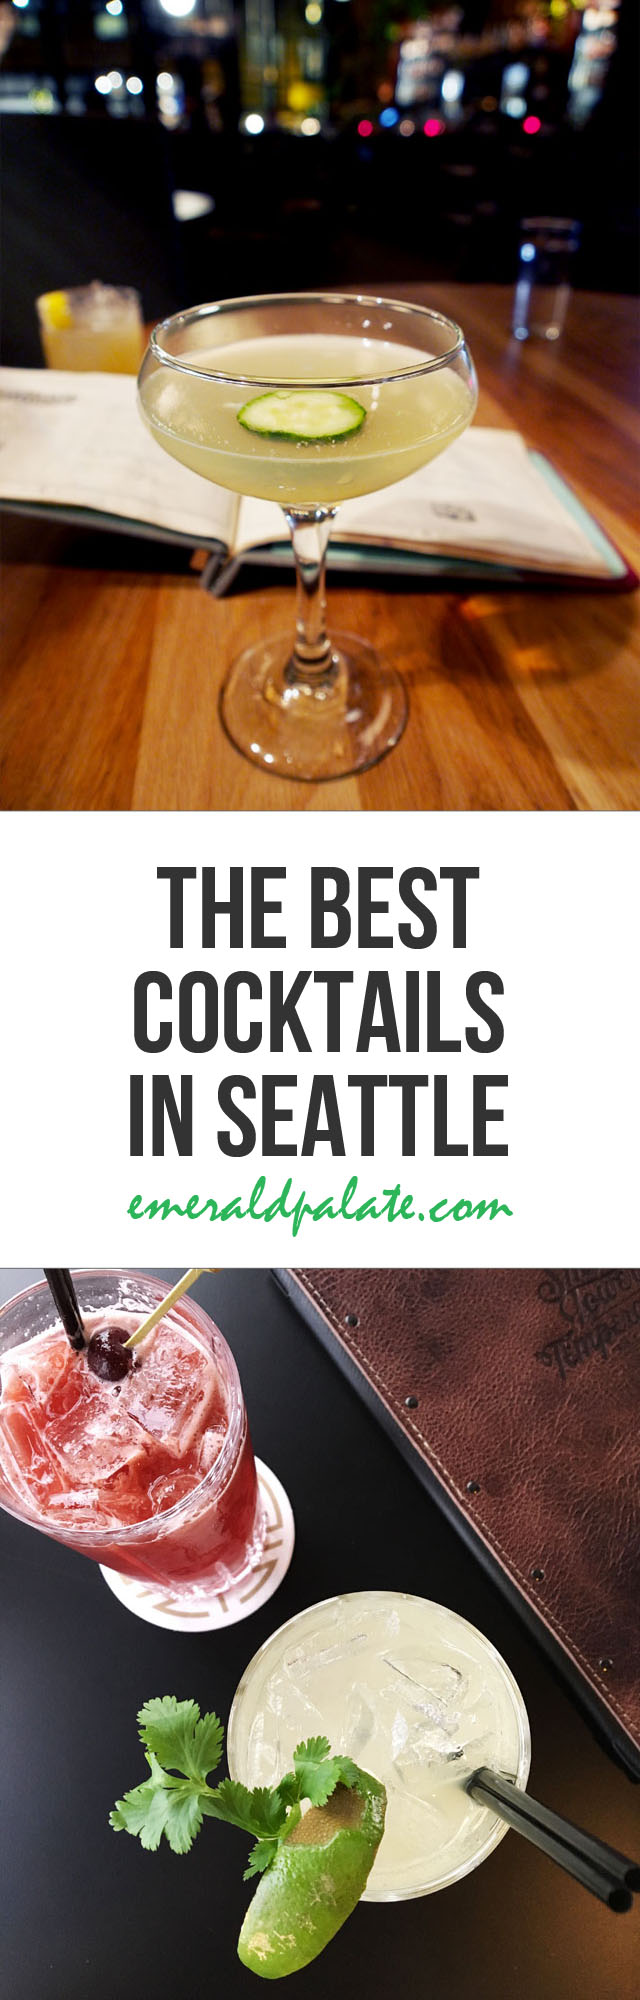 Seattle's craft cocktail bar scene is on point. These are the best cocktails in Seattle you must try.